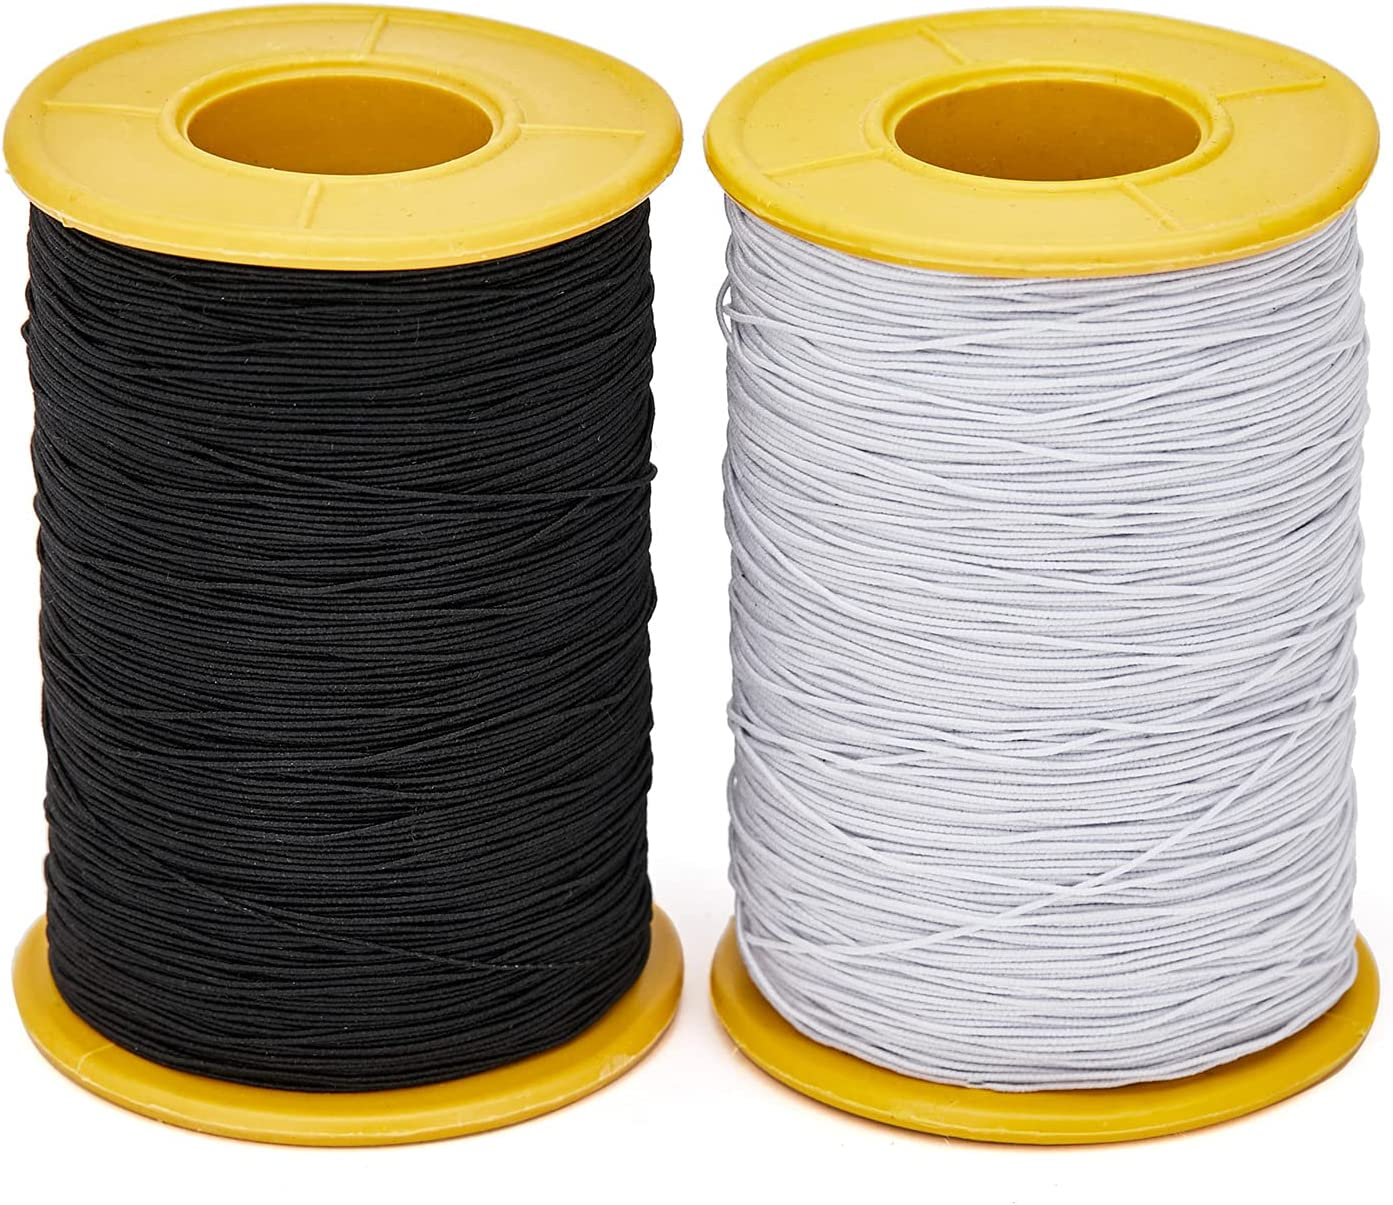 Factory outlet XCRUI 2Roll 0.5mm Thickness 547 Sewing Elastic Brace Yard Max 59% OFF Thread